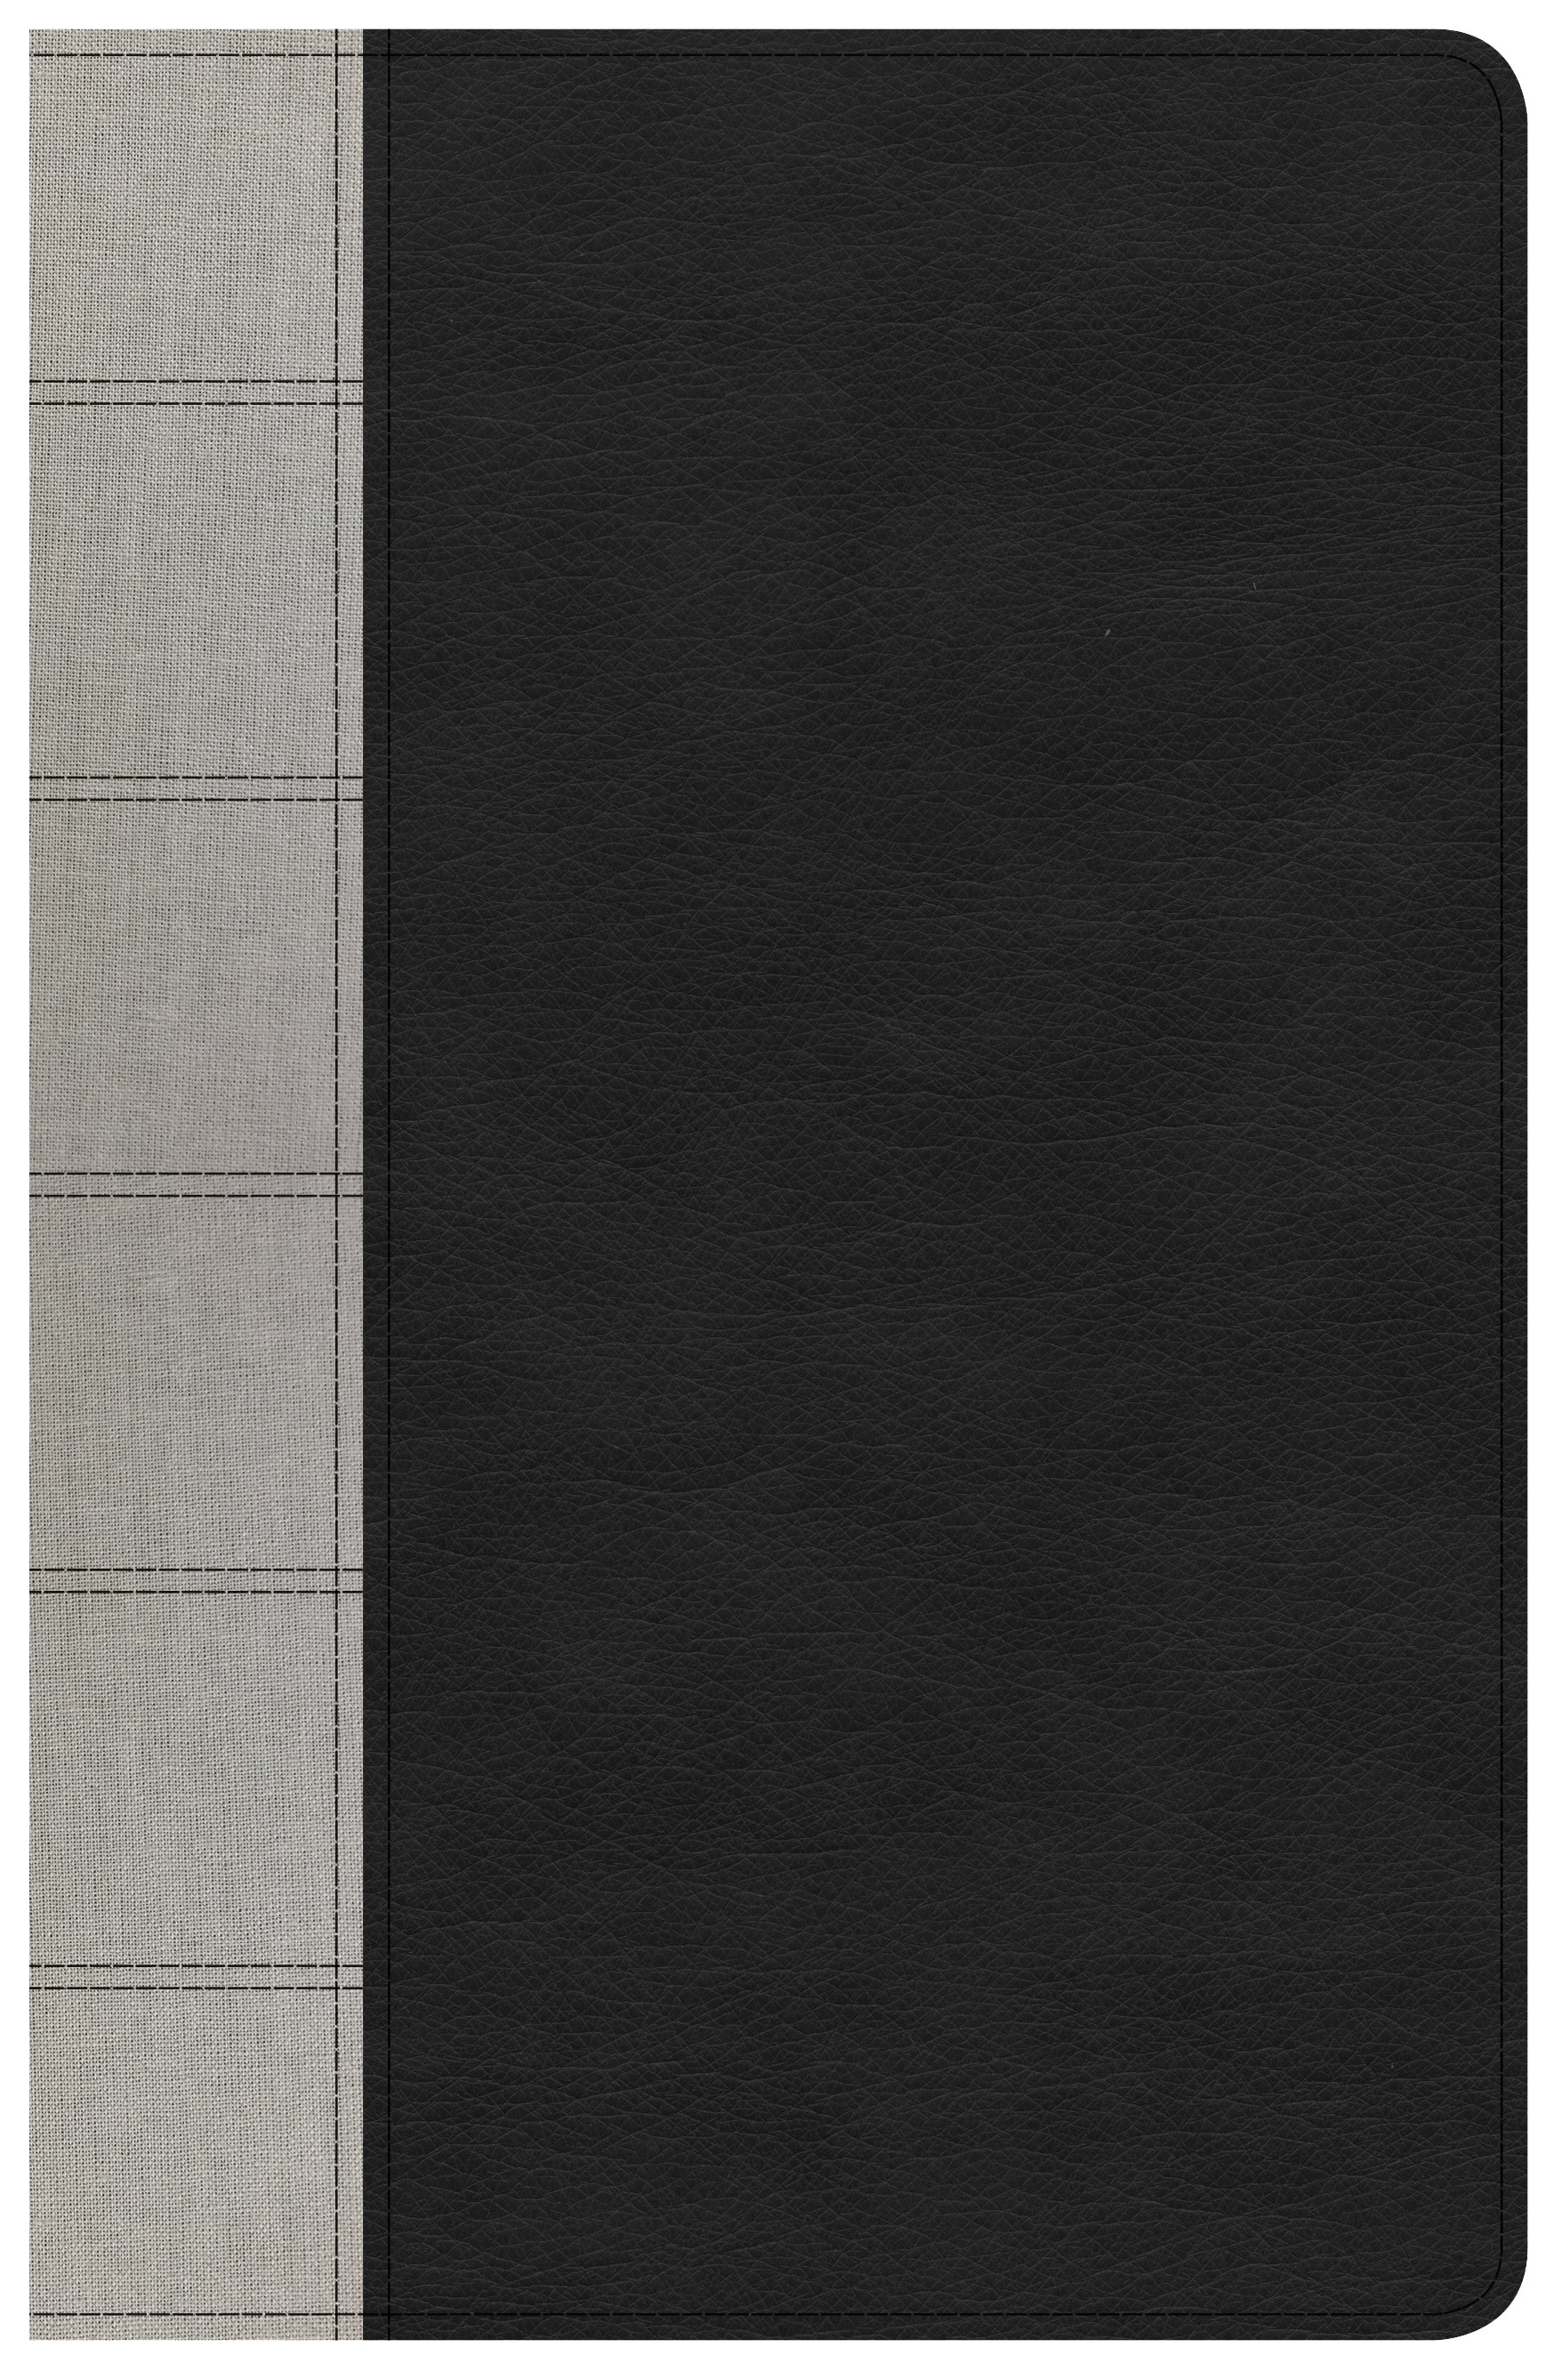 KJV Large Print Personal Size Reference Bible-Black/Gray Deluxe LeatherTouch